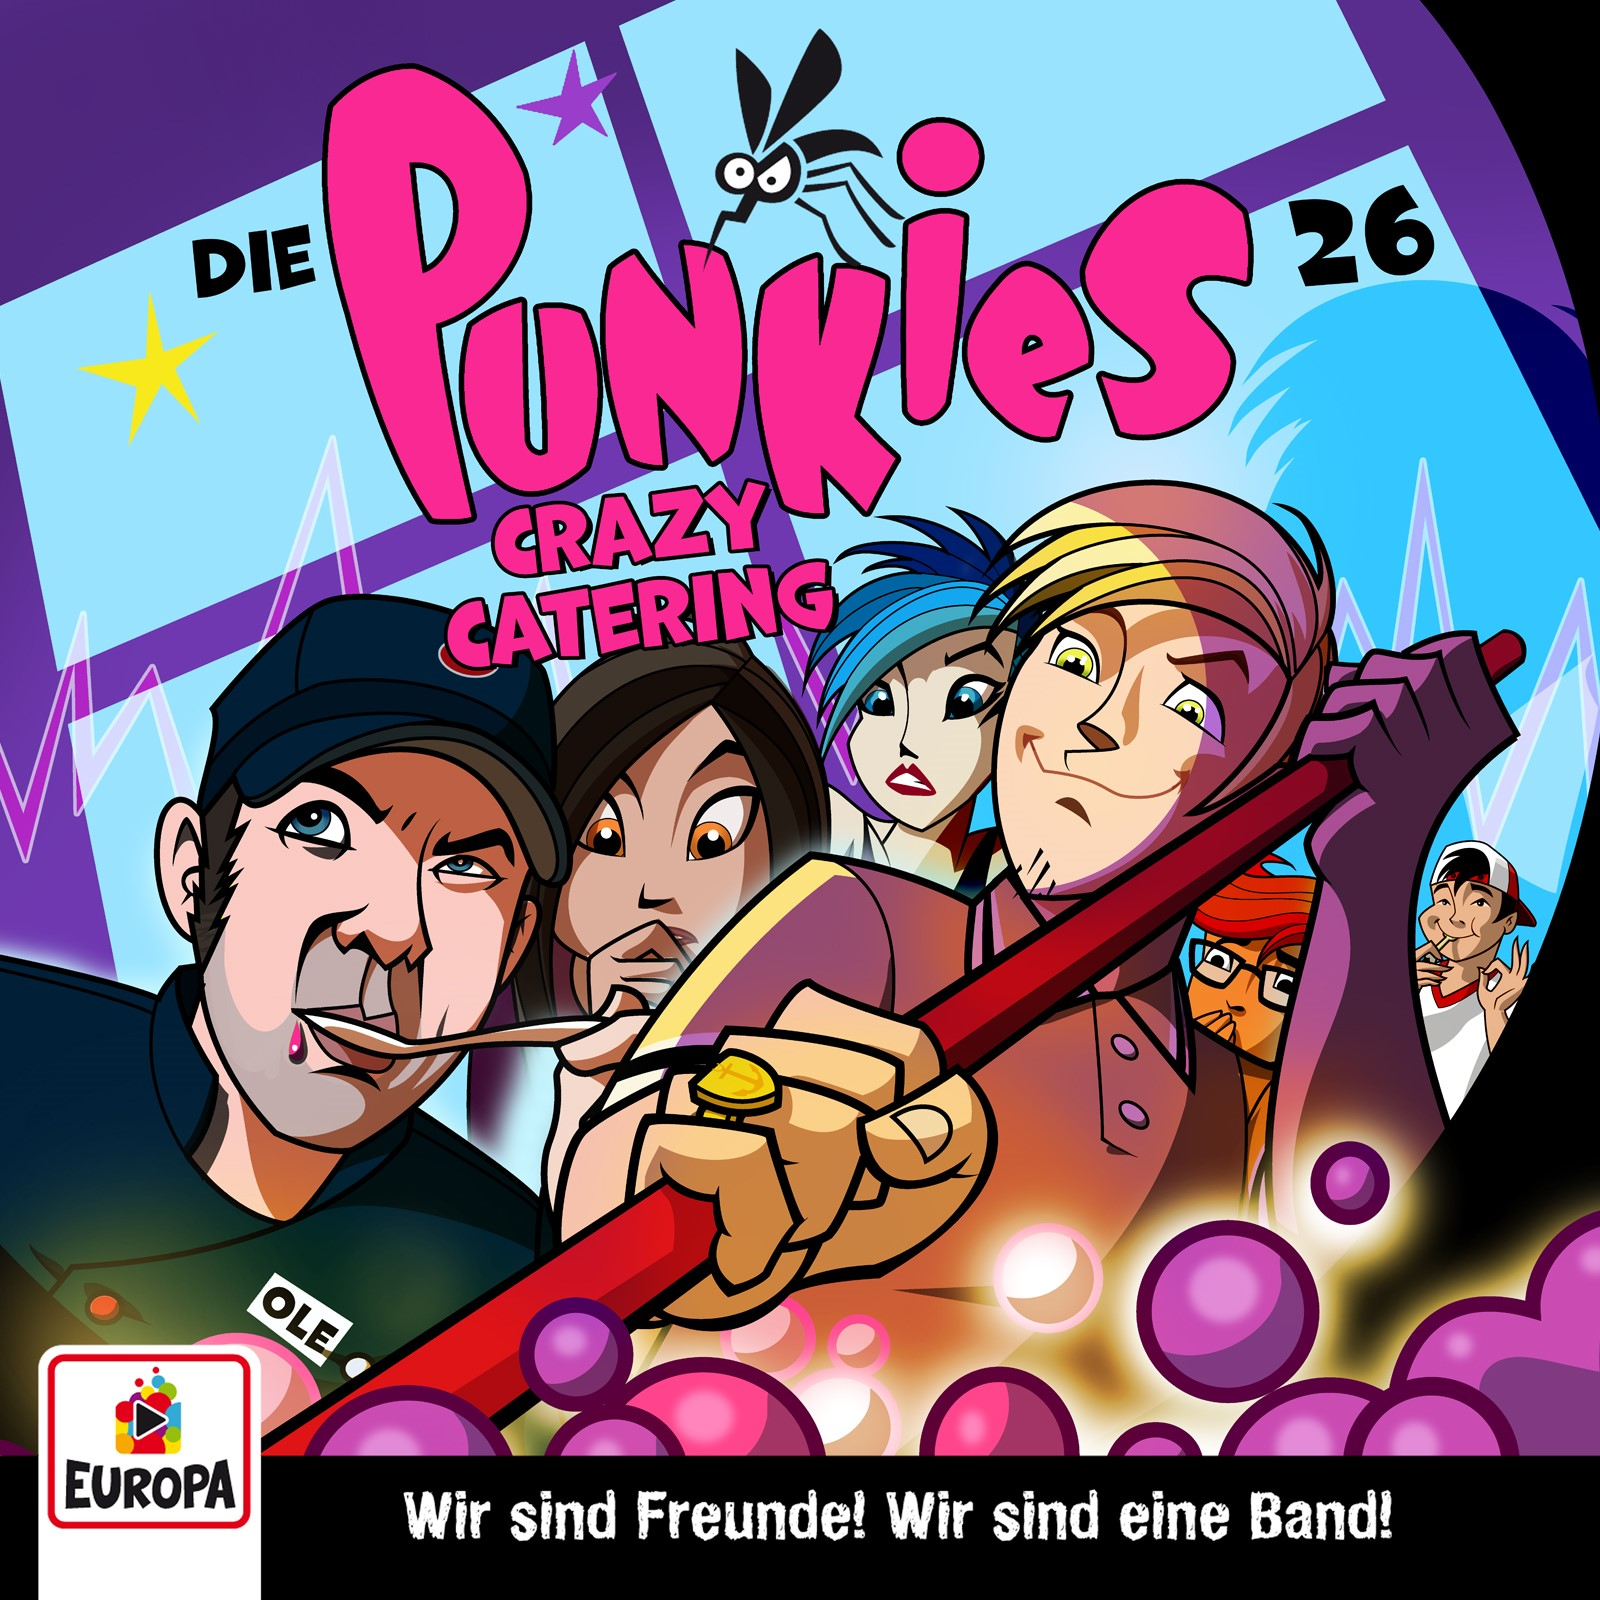 Die Punkies : Crazy Catering!